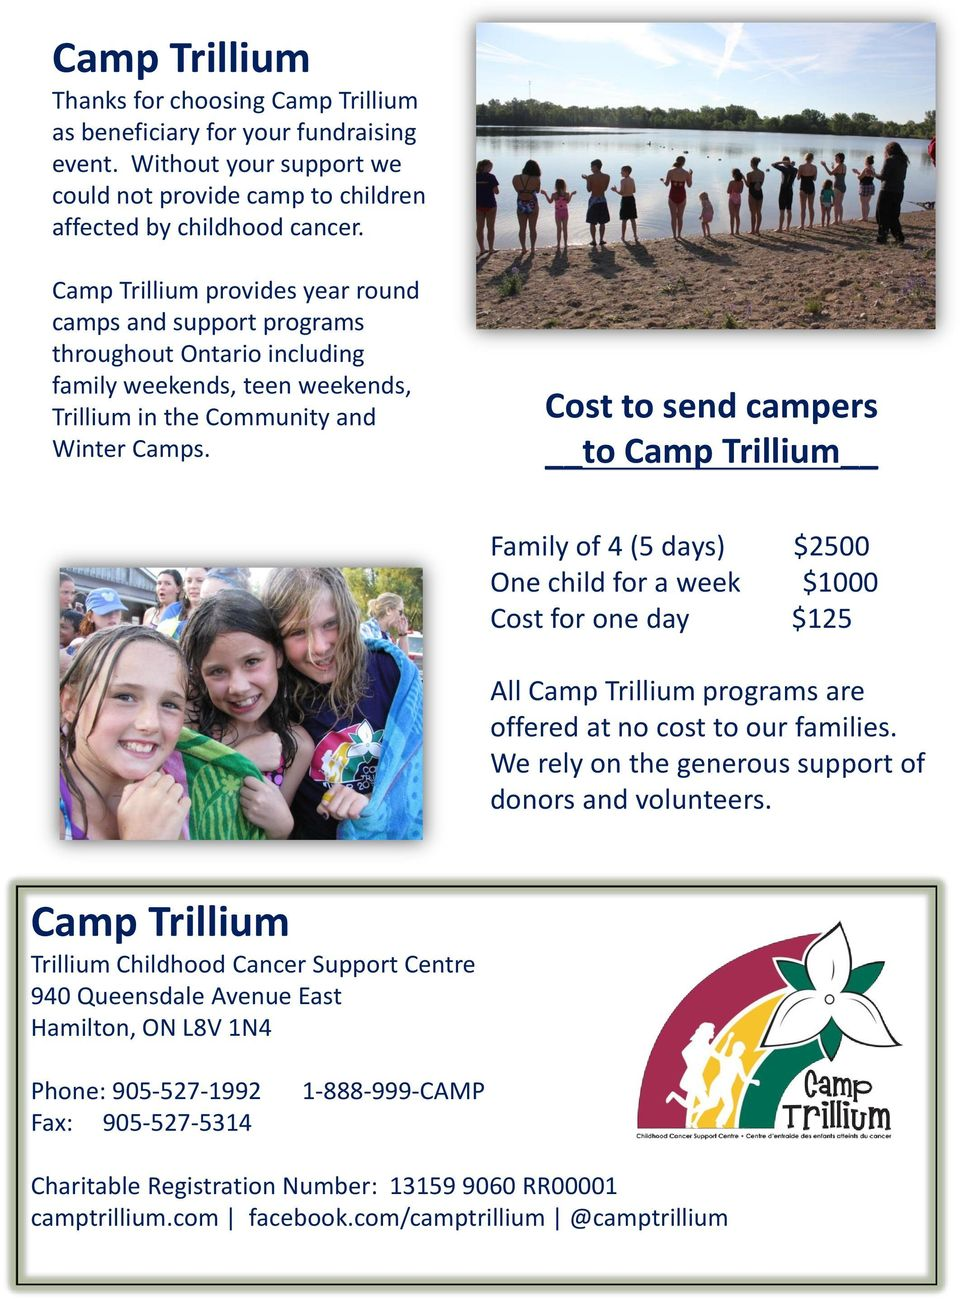 Cost to send campers to Camp Trillium Family of 4 (5 days) $2500 One child for a week $1000 Cost for one day $125 All Camp Trillium programs are offered at no cost to our families.